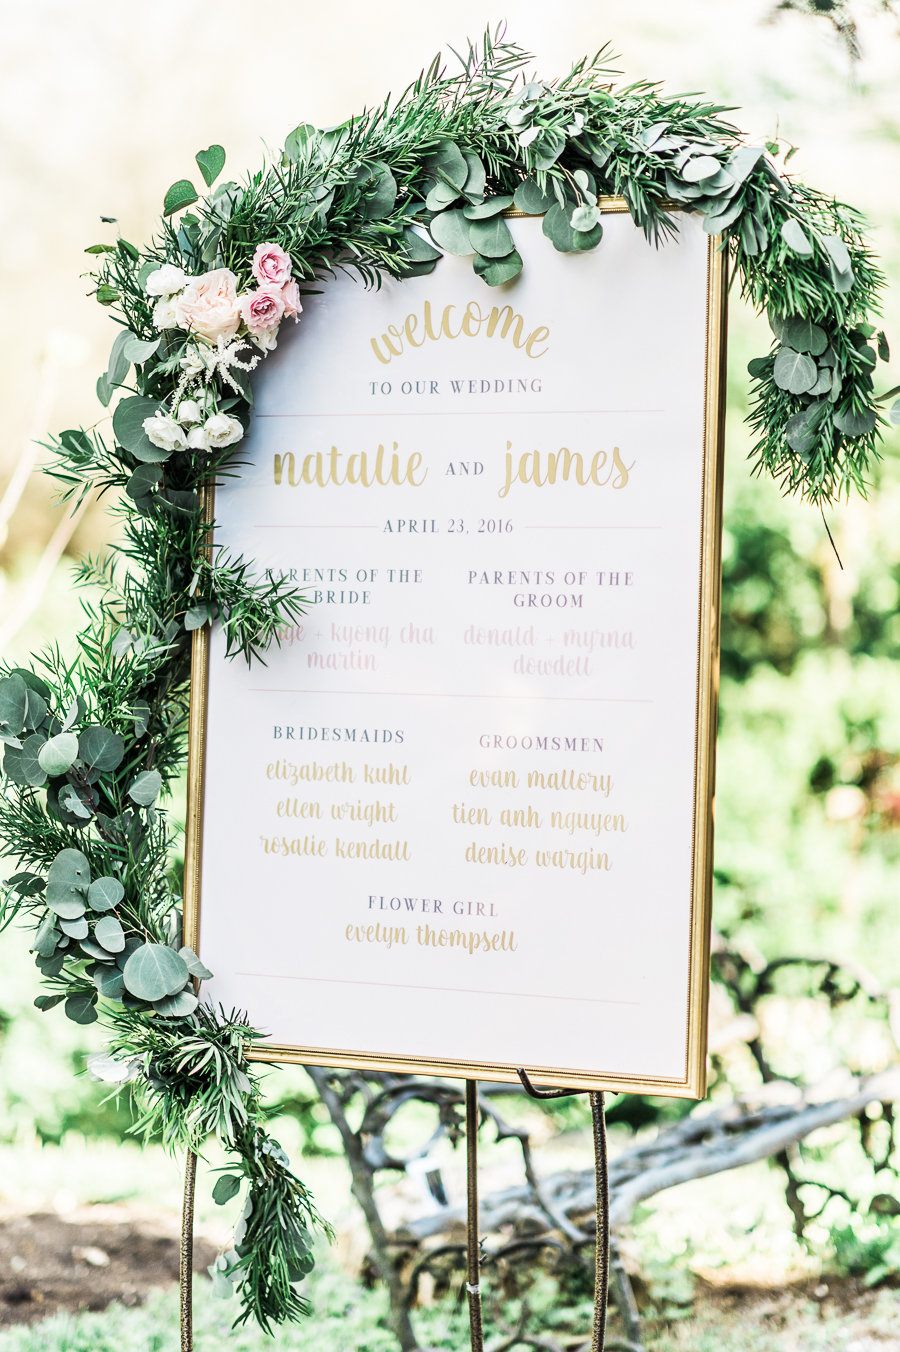 wedding-welcome-sign-and-seating-chart-third-clover-stephanie-messick-photo-blossom-and-vine-kim-newton-weddings